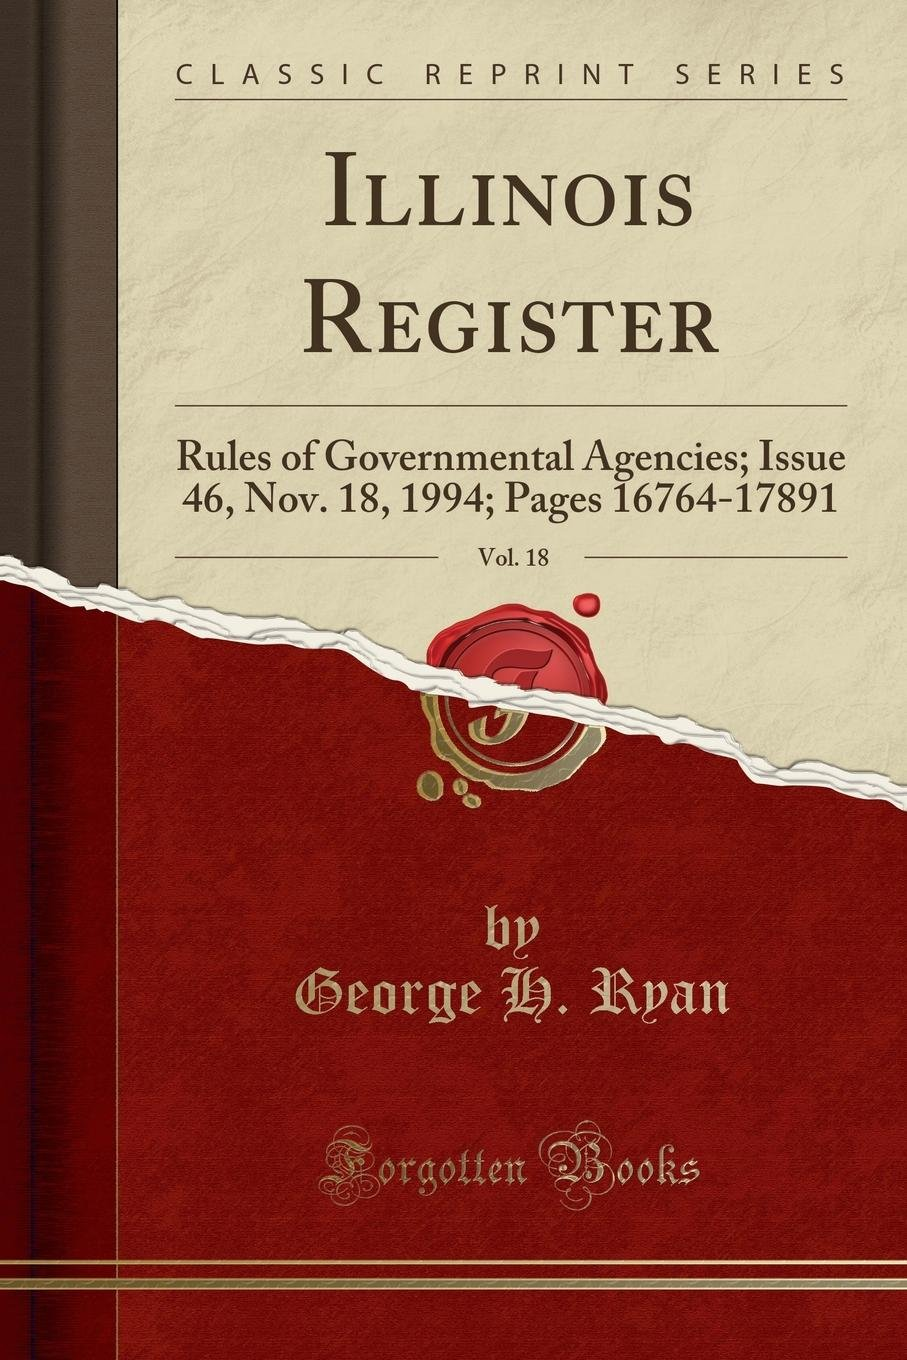 Illinois Register, Vol. 18: Rules of Governmental Agencies; Issue 46, Nov. 18, 1994; Pages 16764-17891 (Classic Reprint) ebook